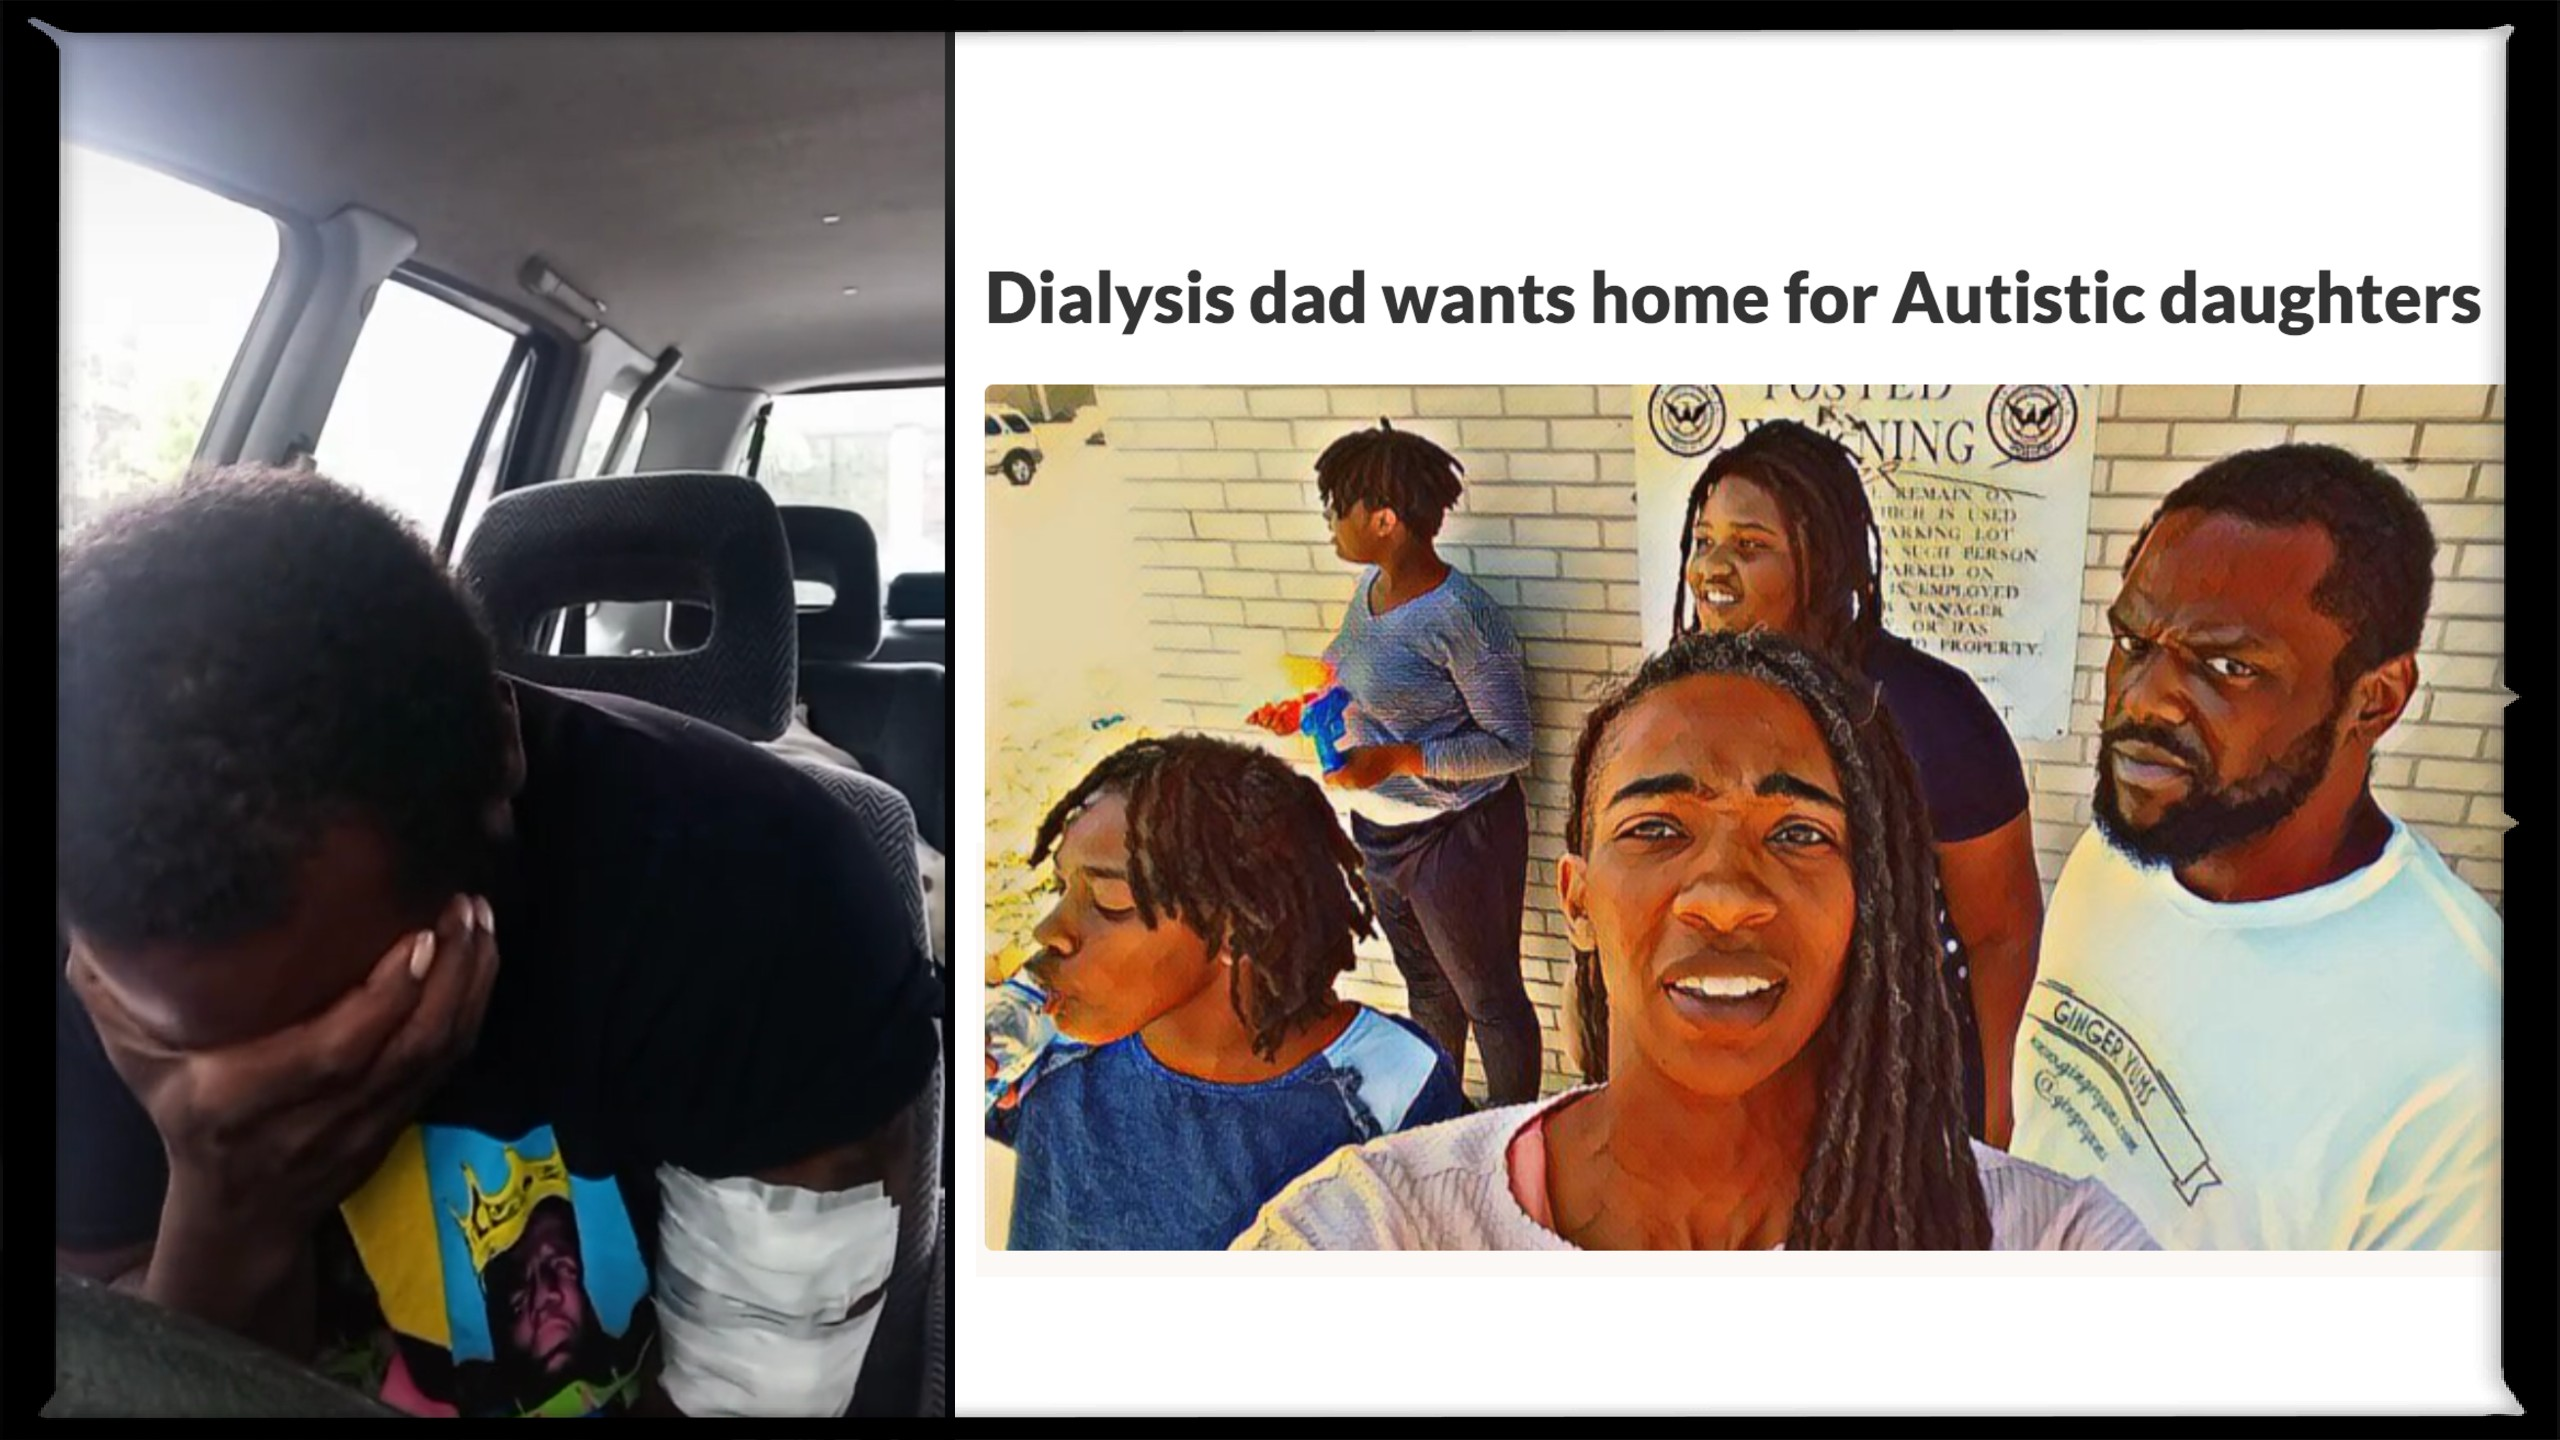 Generous strangers help dad on dialysis afford home